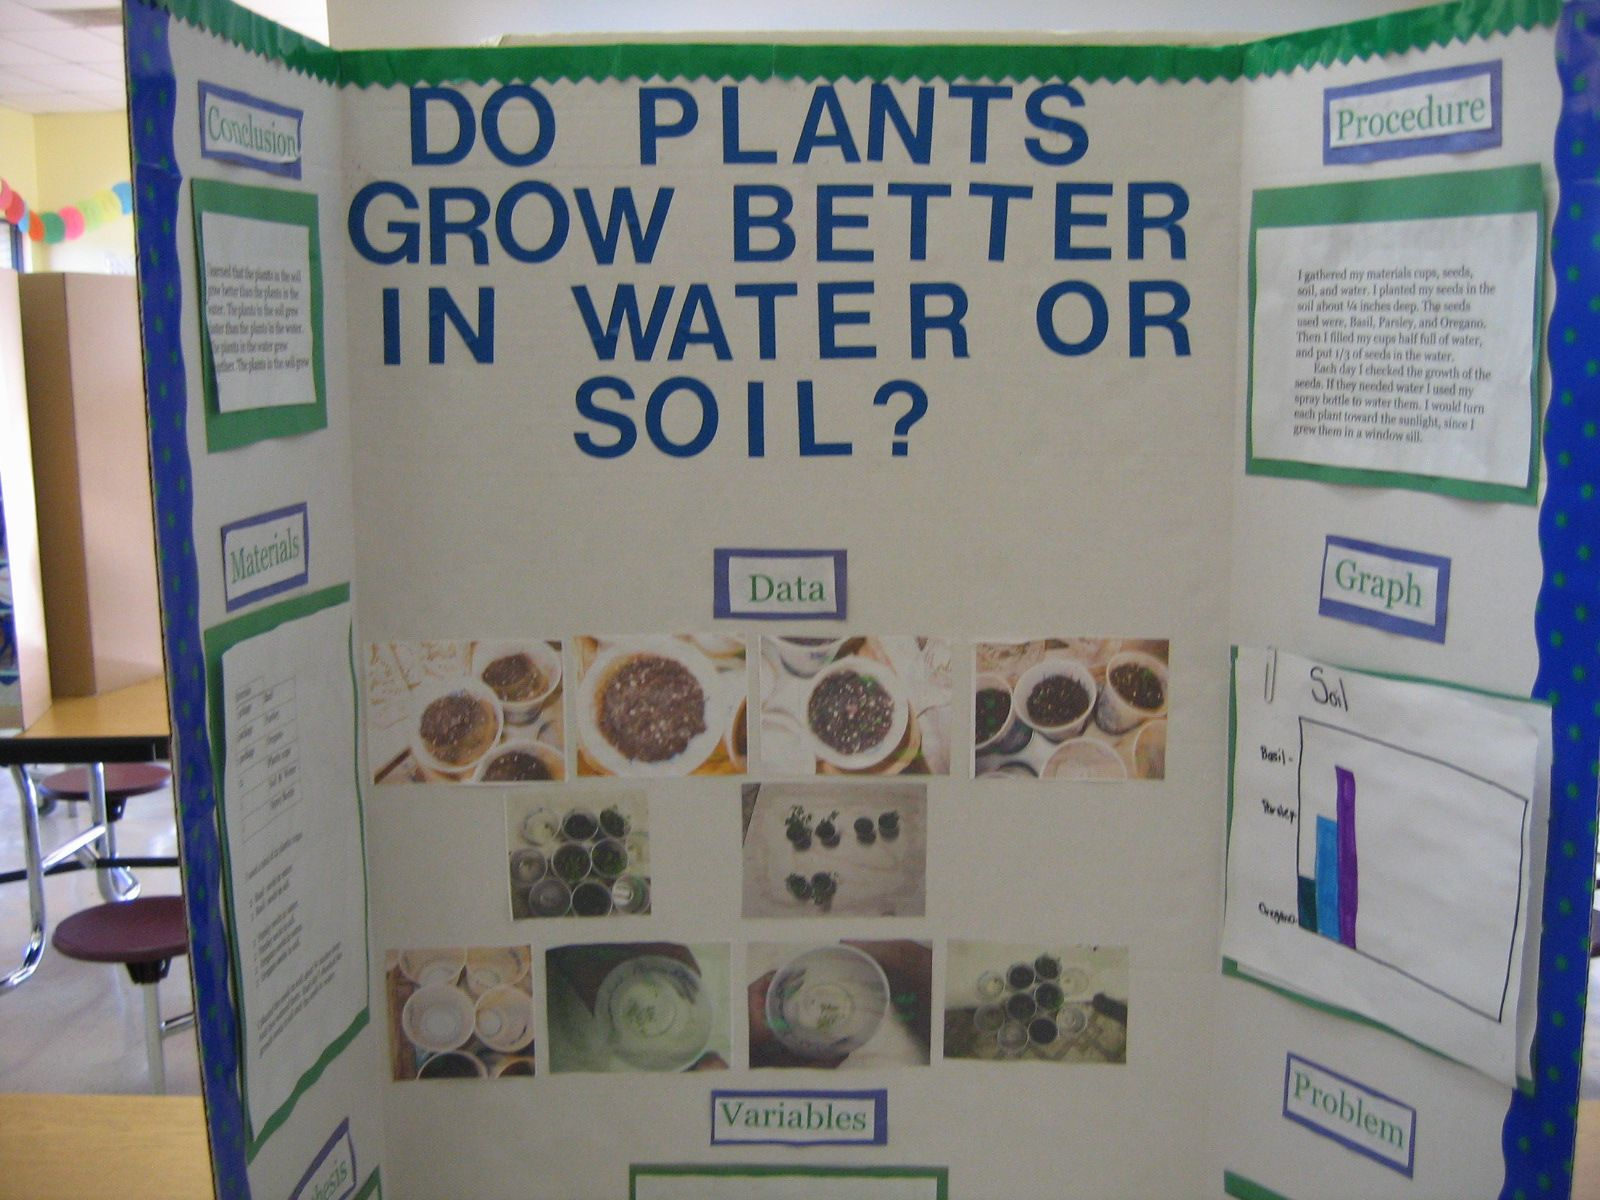 Science Fair Projects About Plants Growth